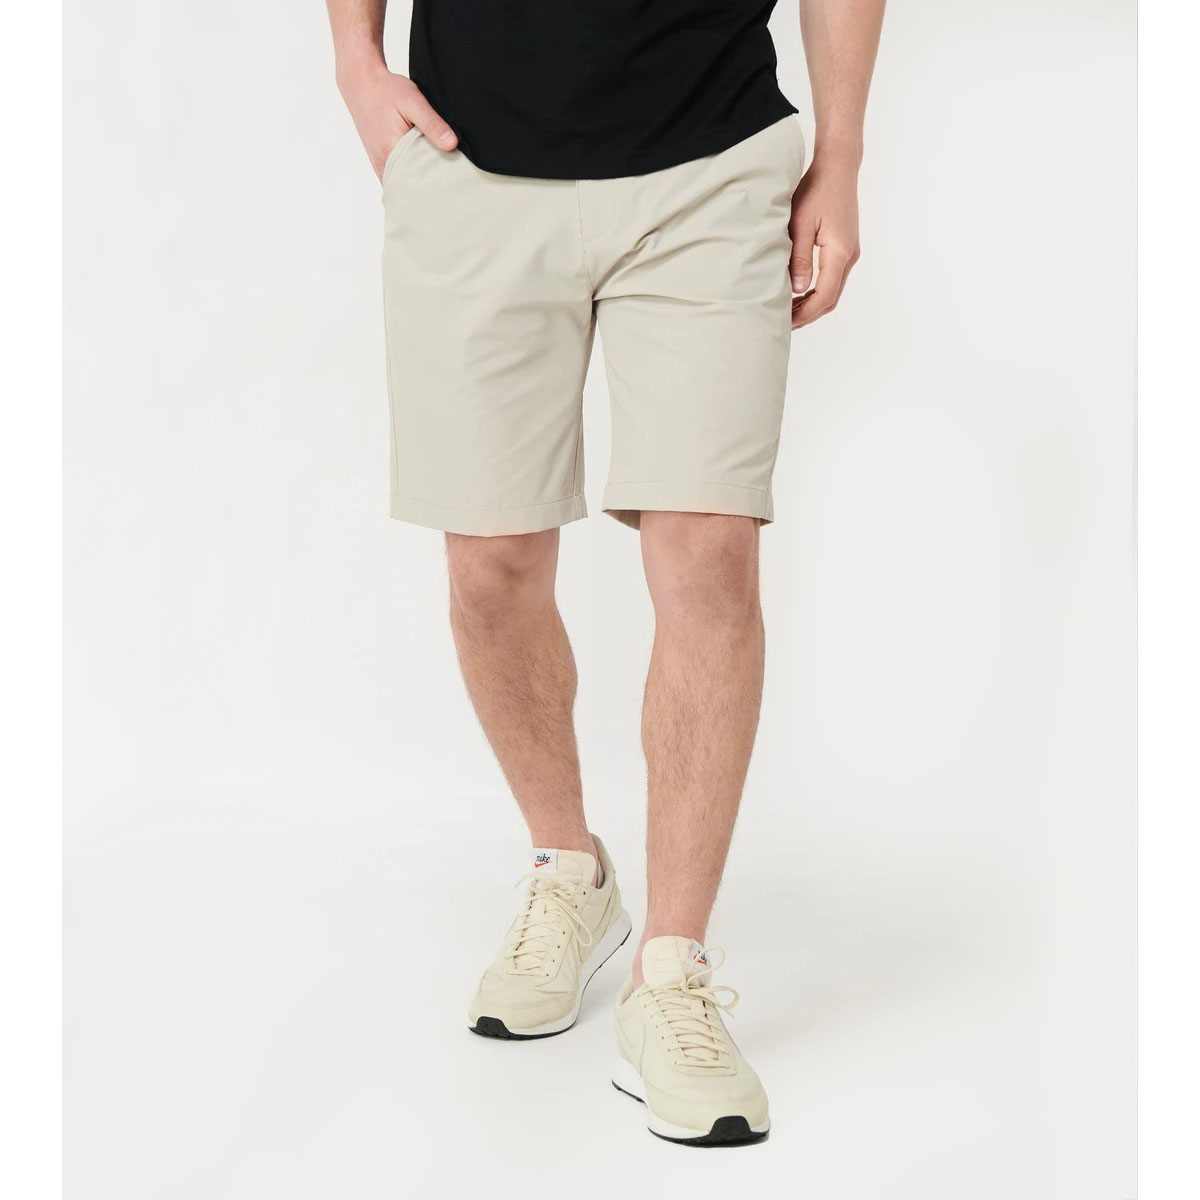 Western Rise Boundless Short, best water shorts for men